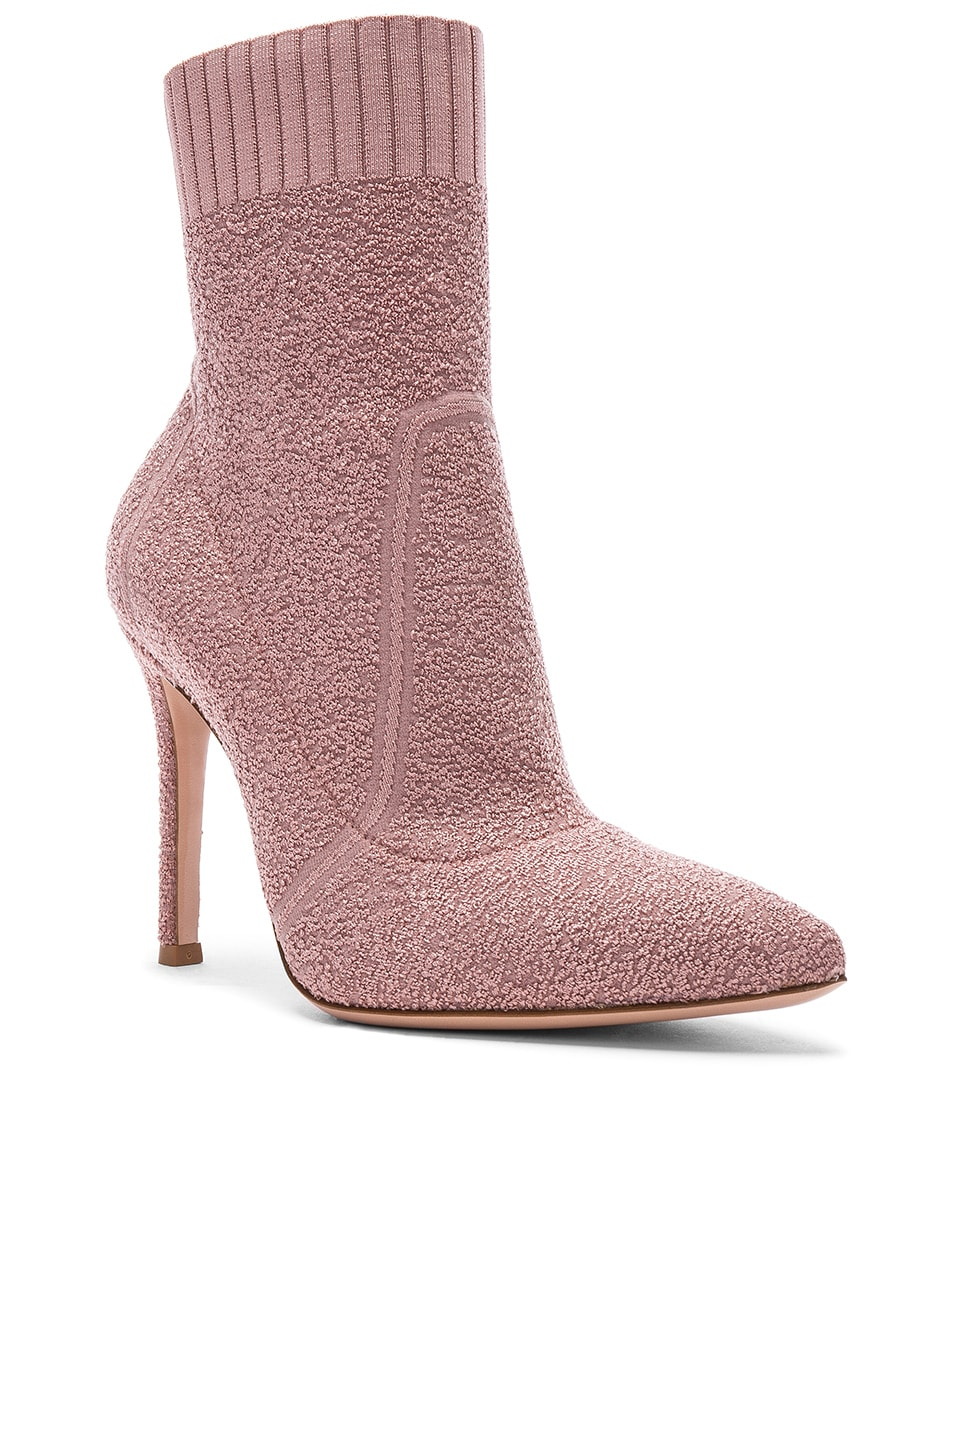 Image 2 of Gianvito Rossi Boucle Knit Fiona Ankle Booties in Dahlia